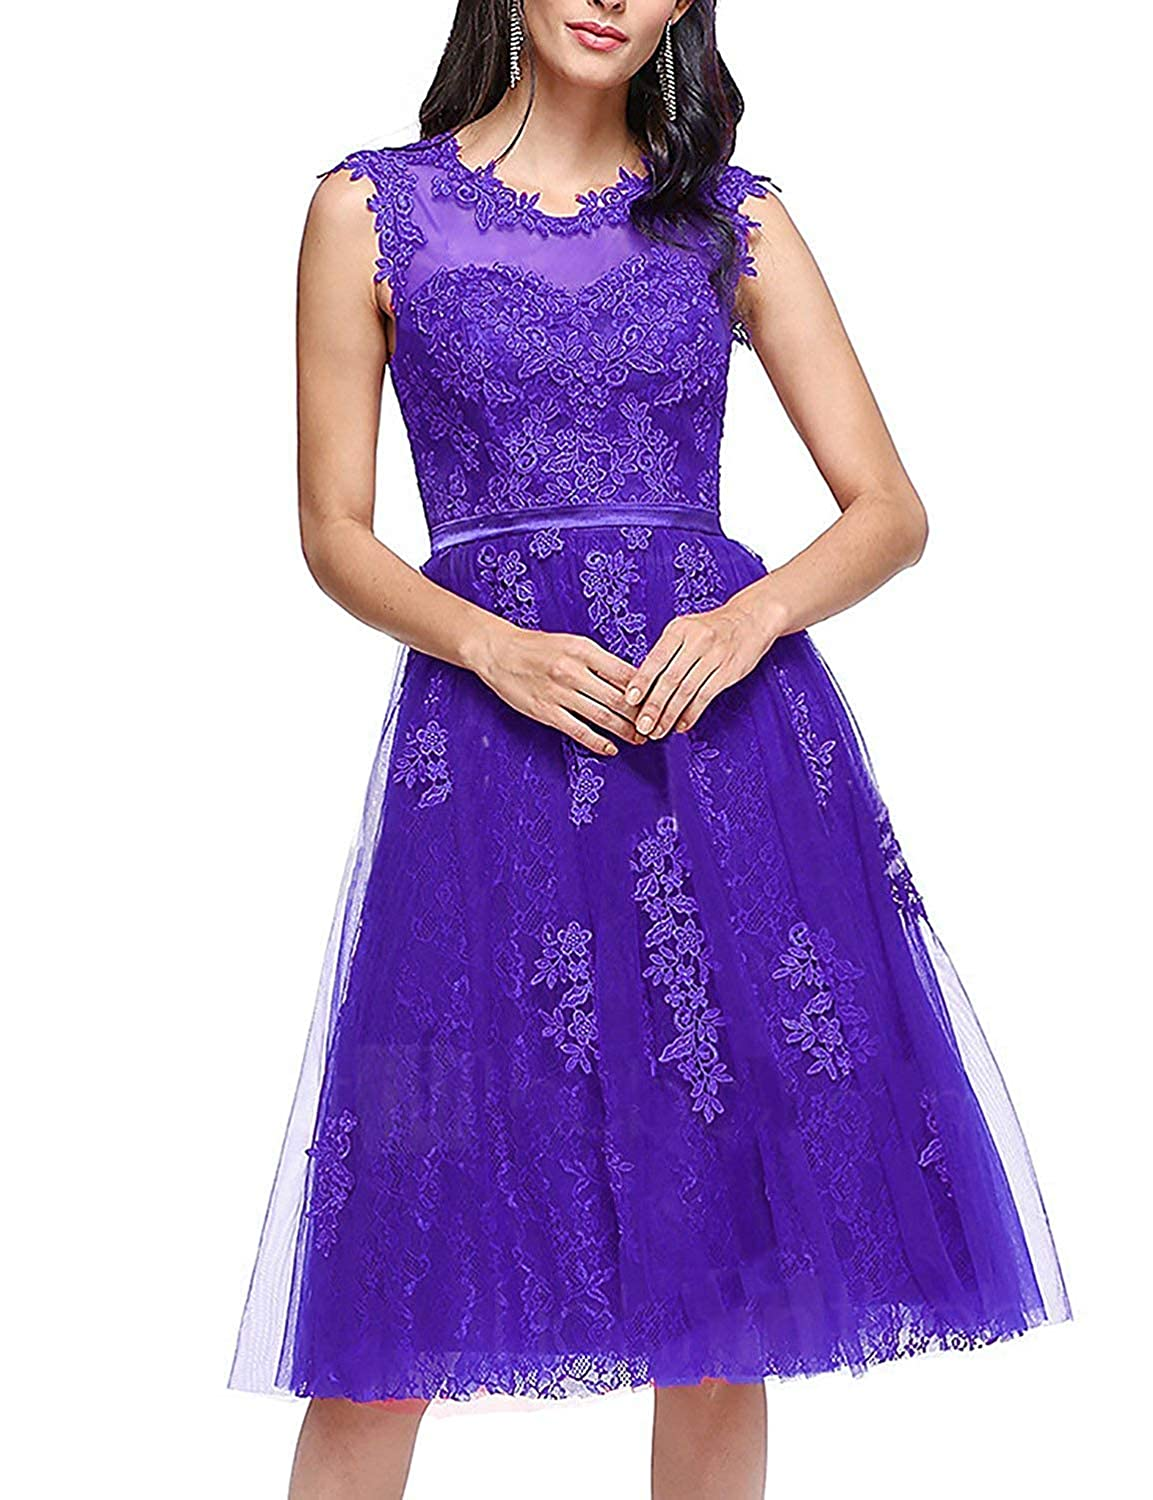 Purple ASBridal Bridesmaid Dresses Short Homecoming Dress Lace Cocktail Party Gowns Prom Gown Knee Length